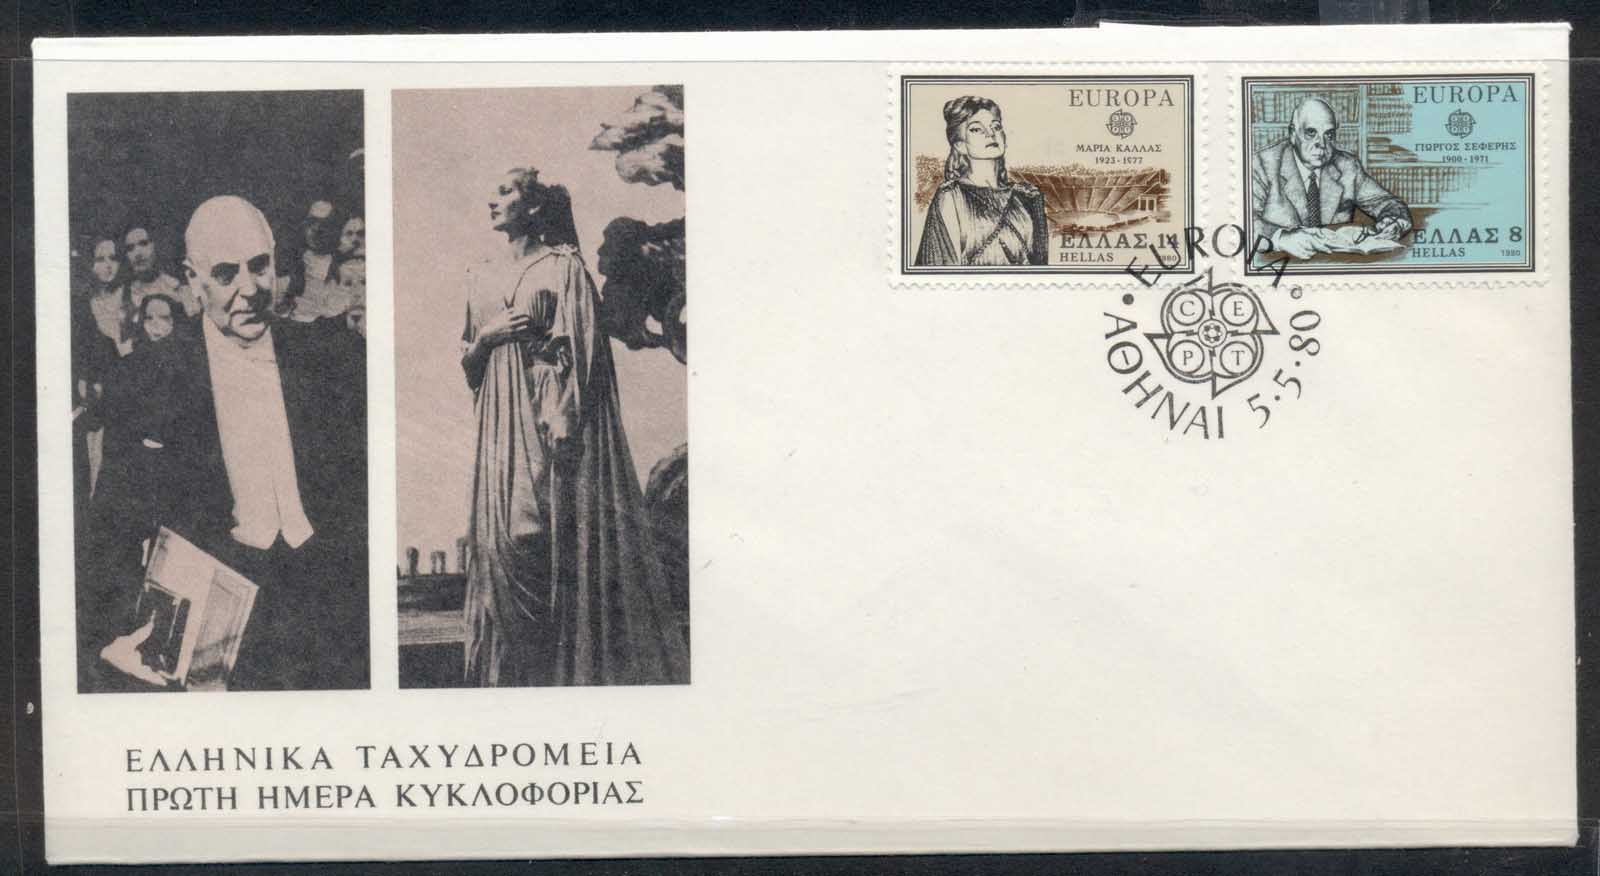 Greece 1980 Europa Celebrities FDC